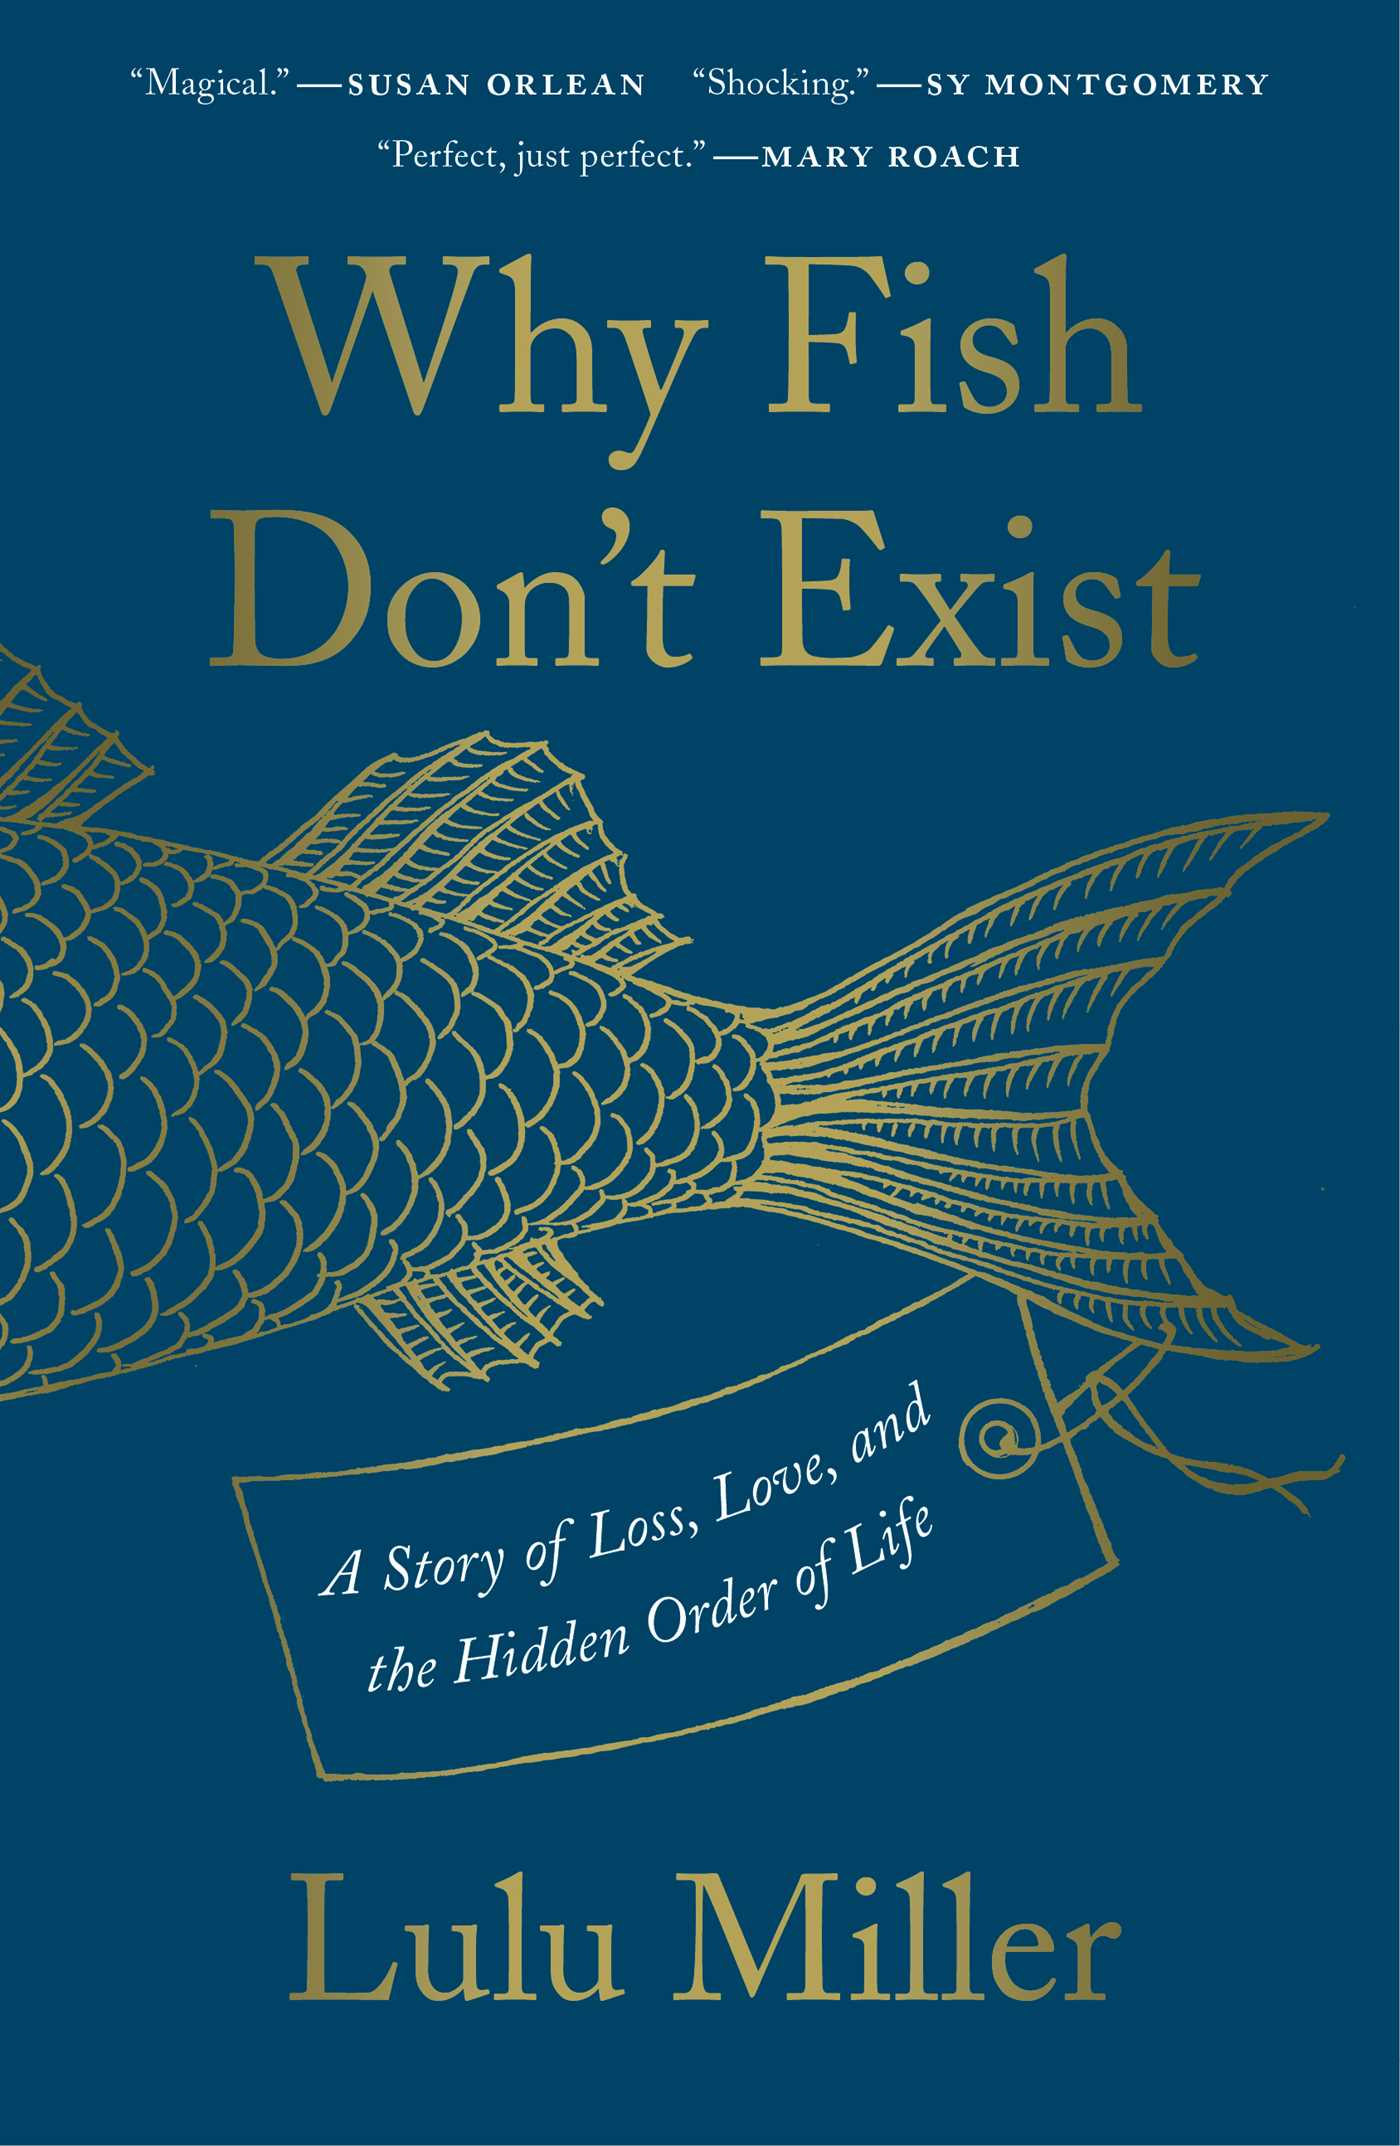 Why Fish Don't Exist | Book by Lulu Miller | Official Publisher Page |  Simon & Schuster